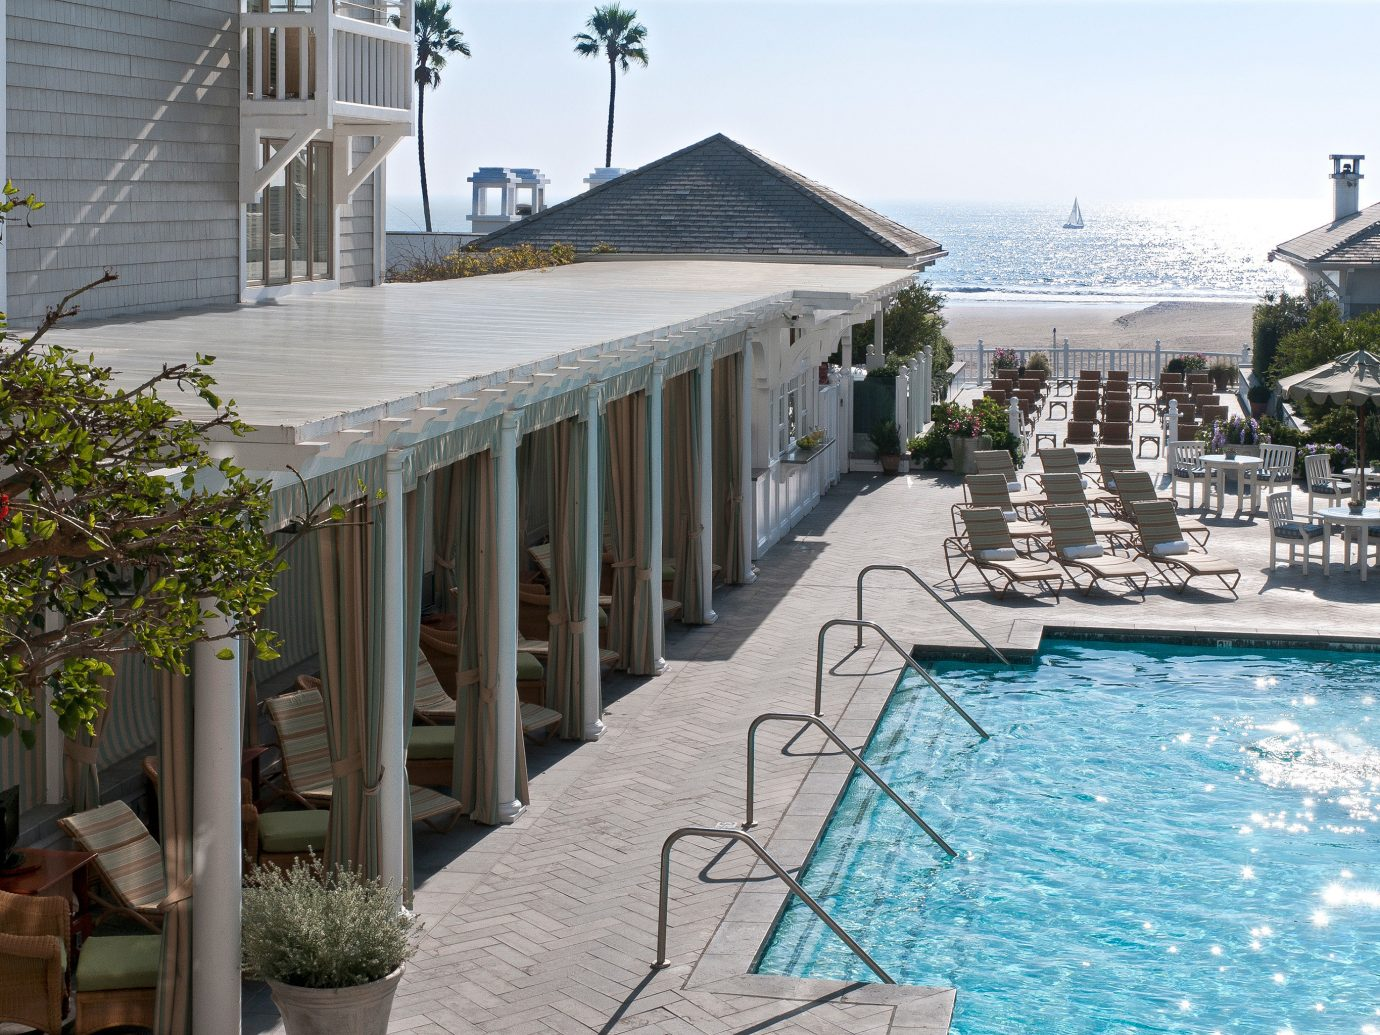 Pool at Shutters on the Beach, CA